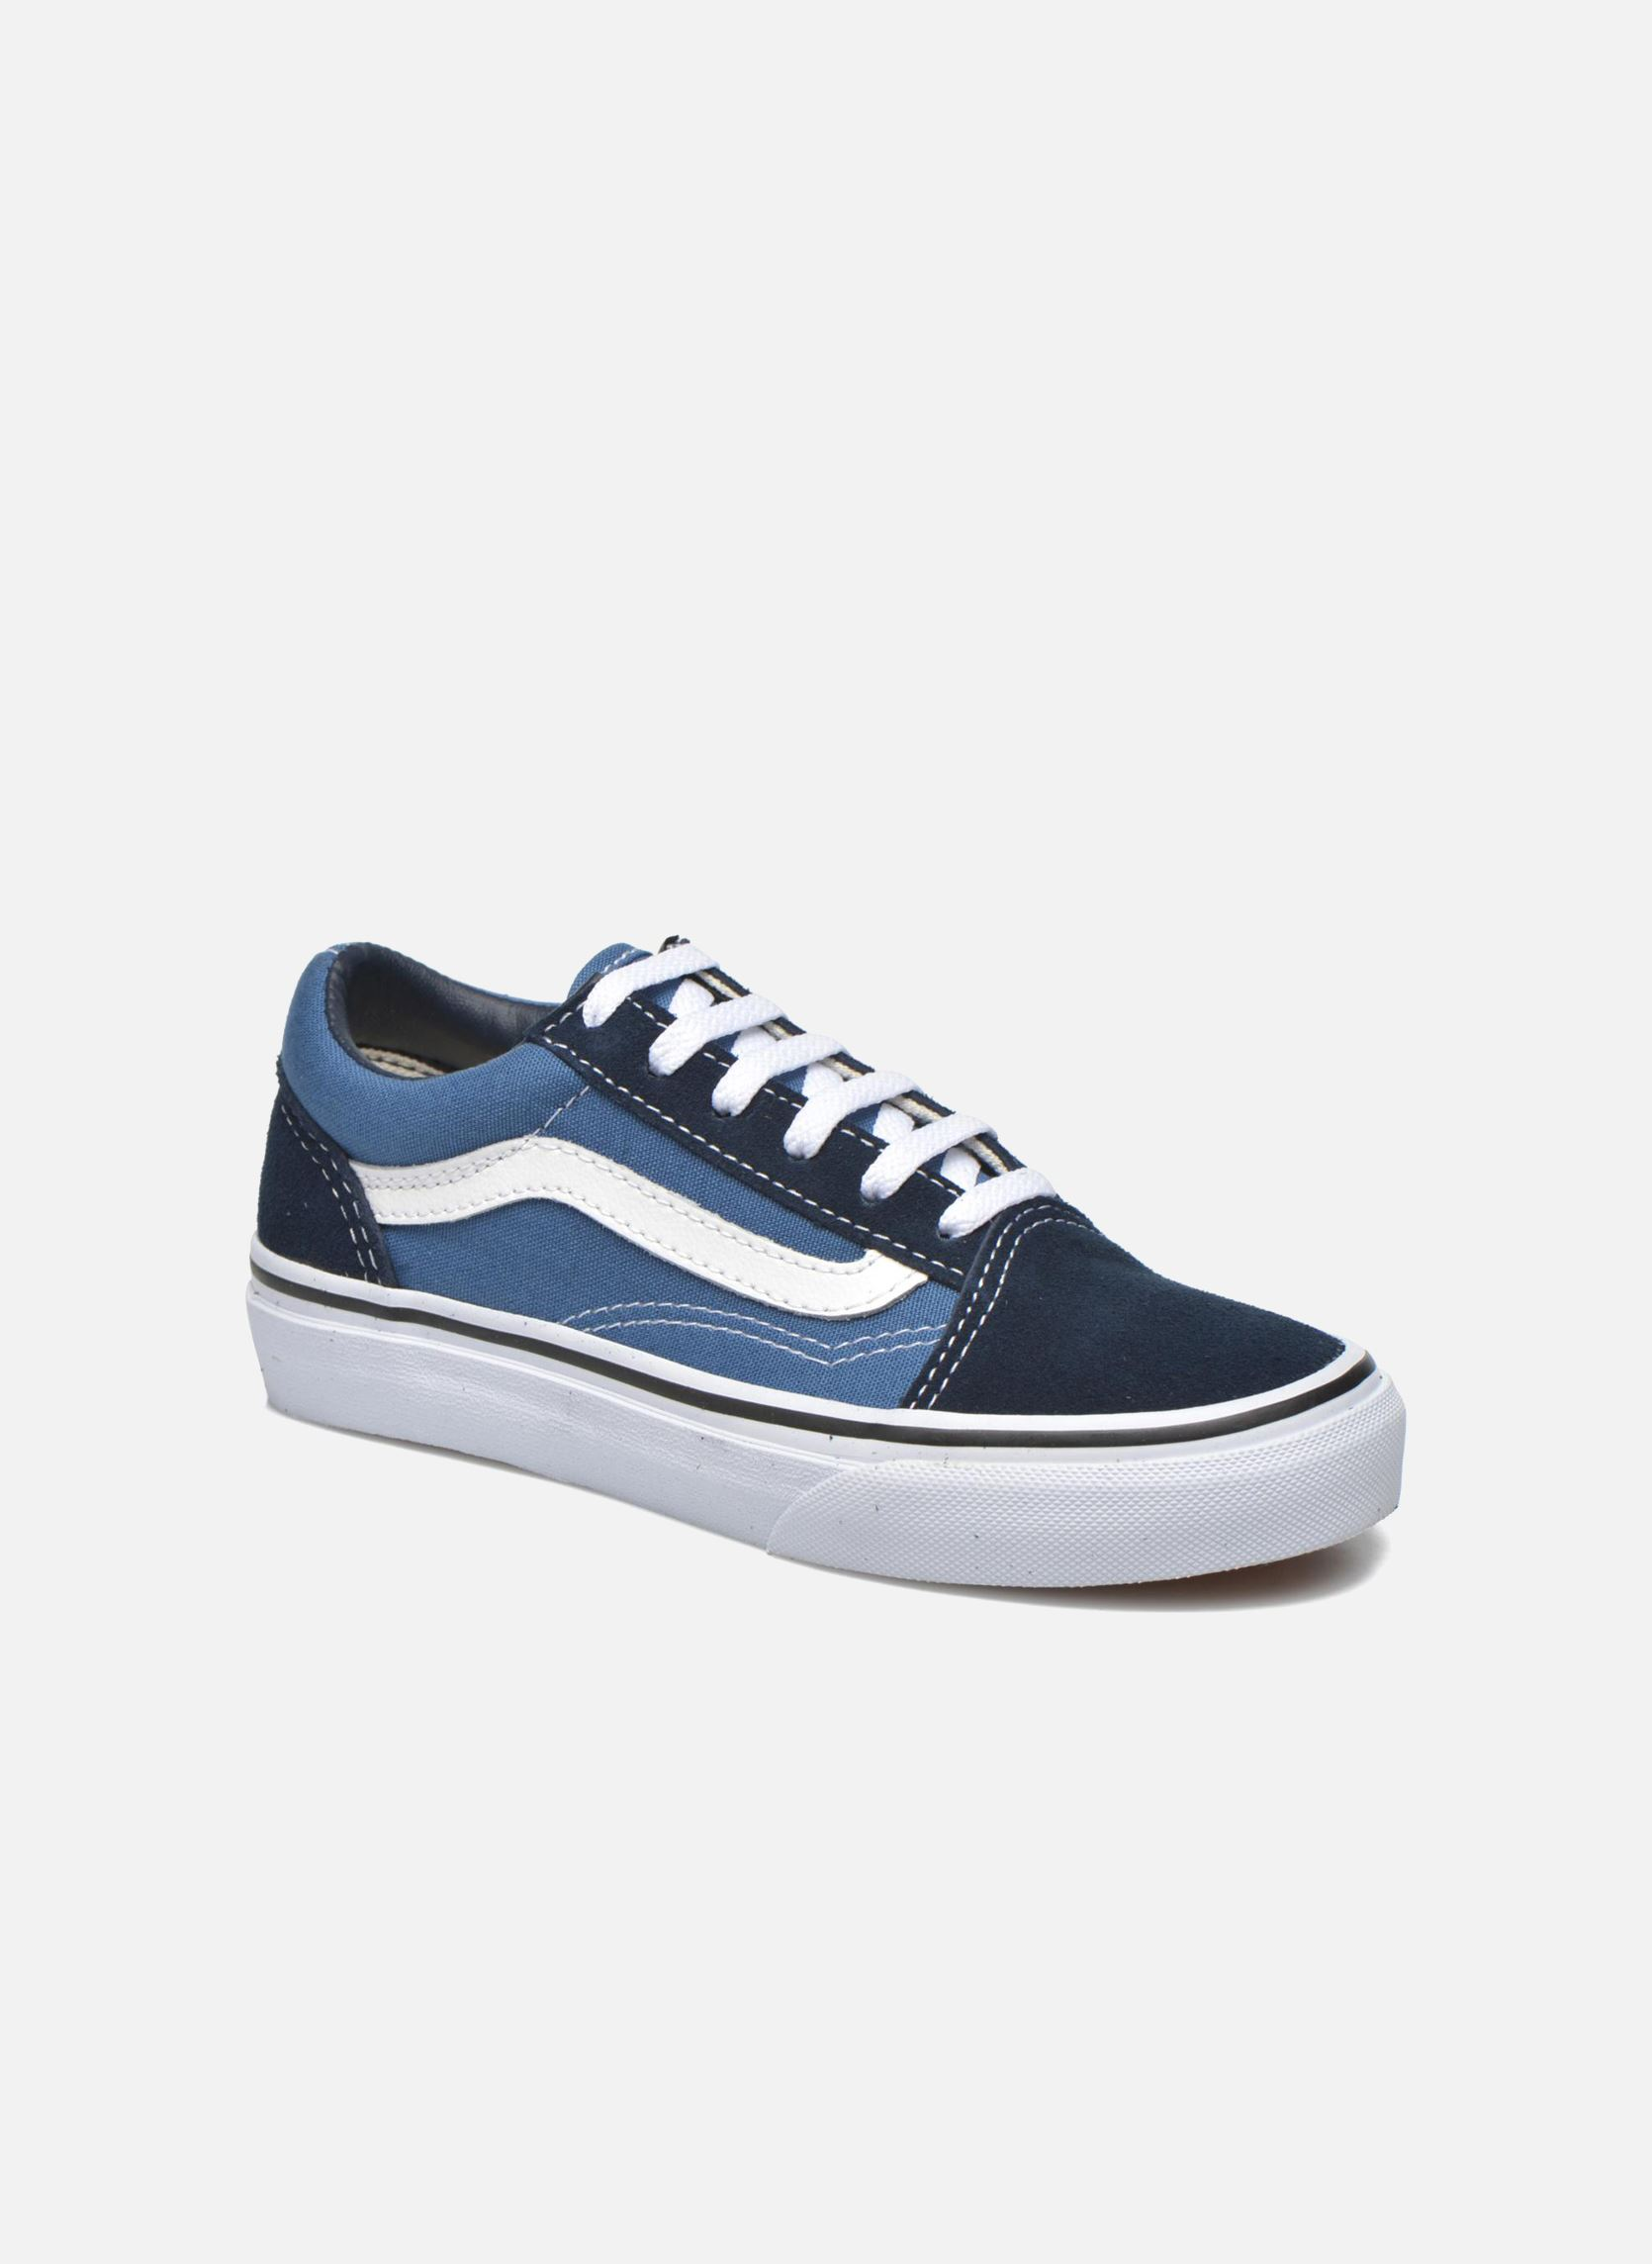 vans old skool e bleu baskets chez sarenza 272452. Black Bedroom Furniture Sets. Home Design Ideas